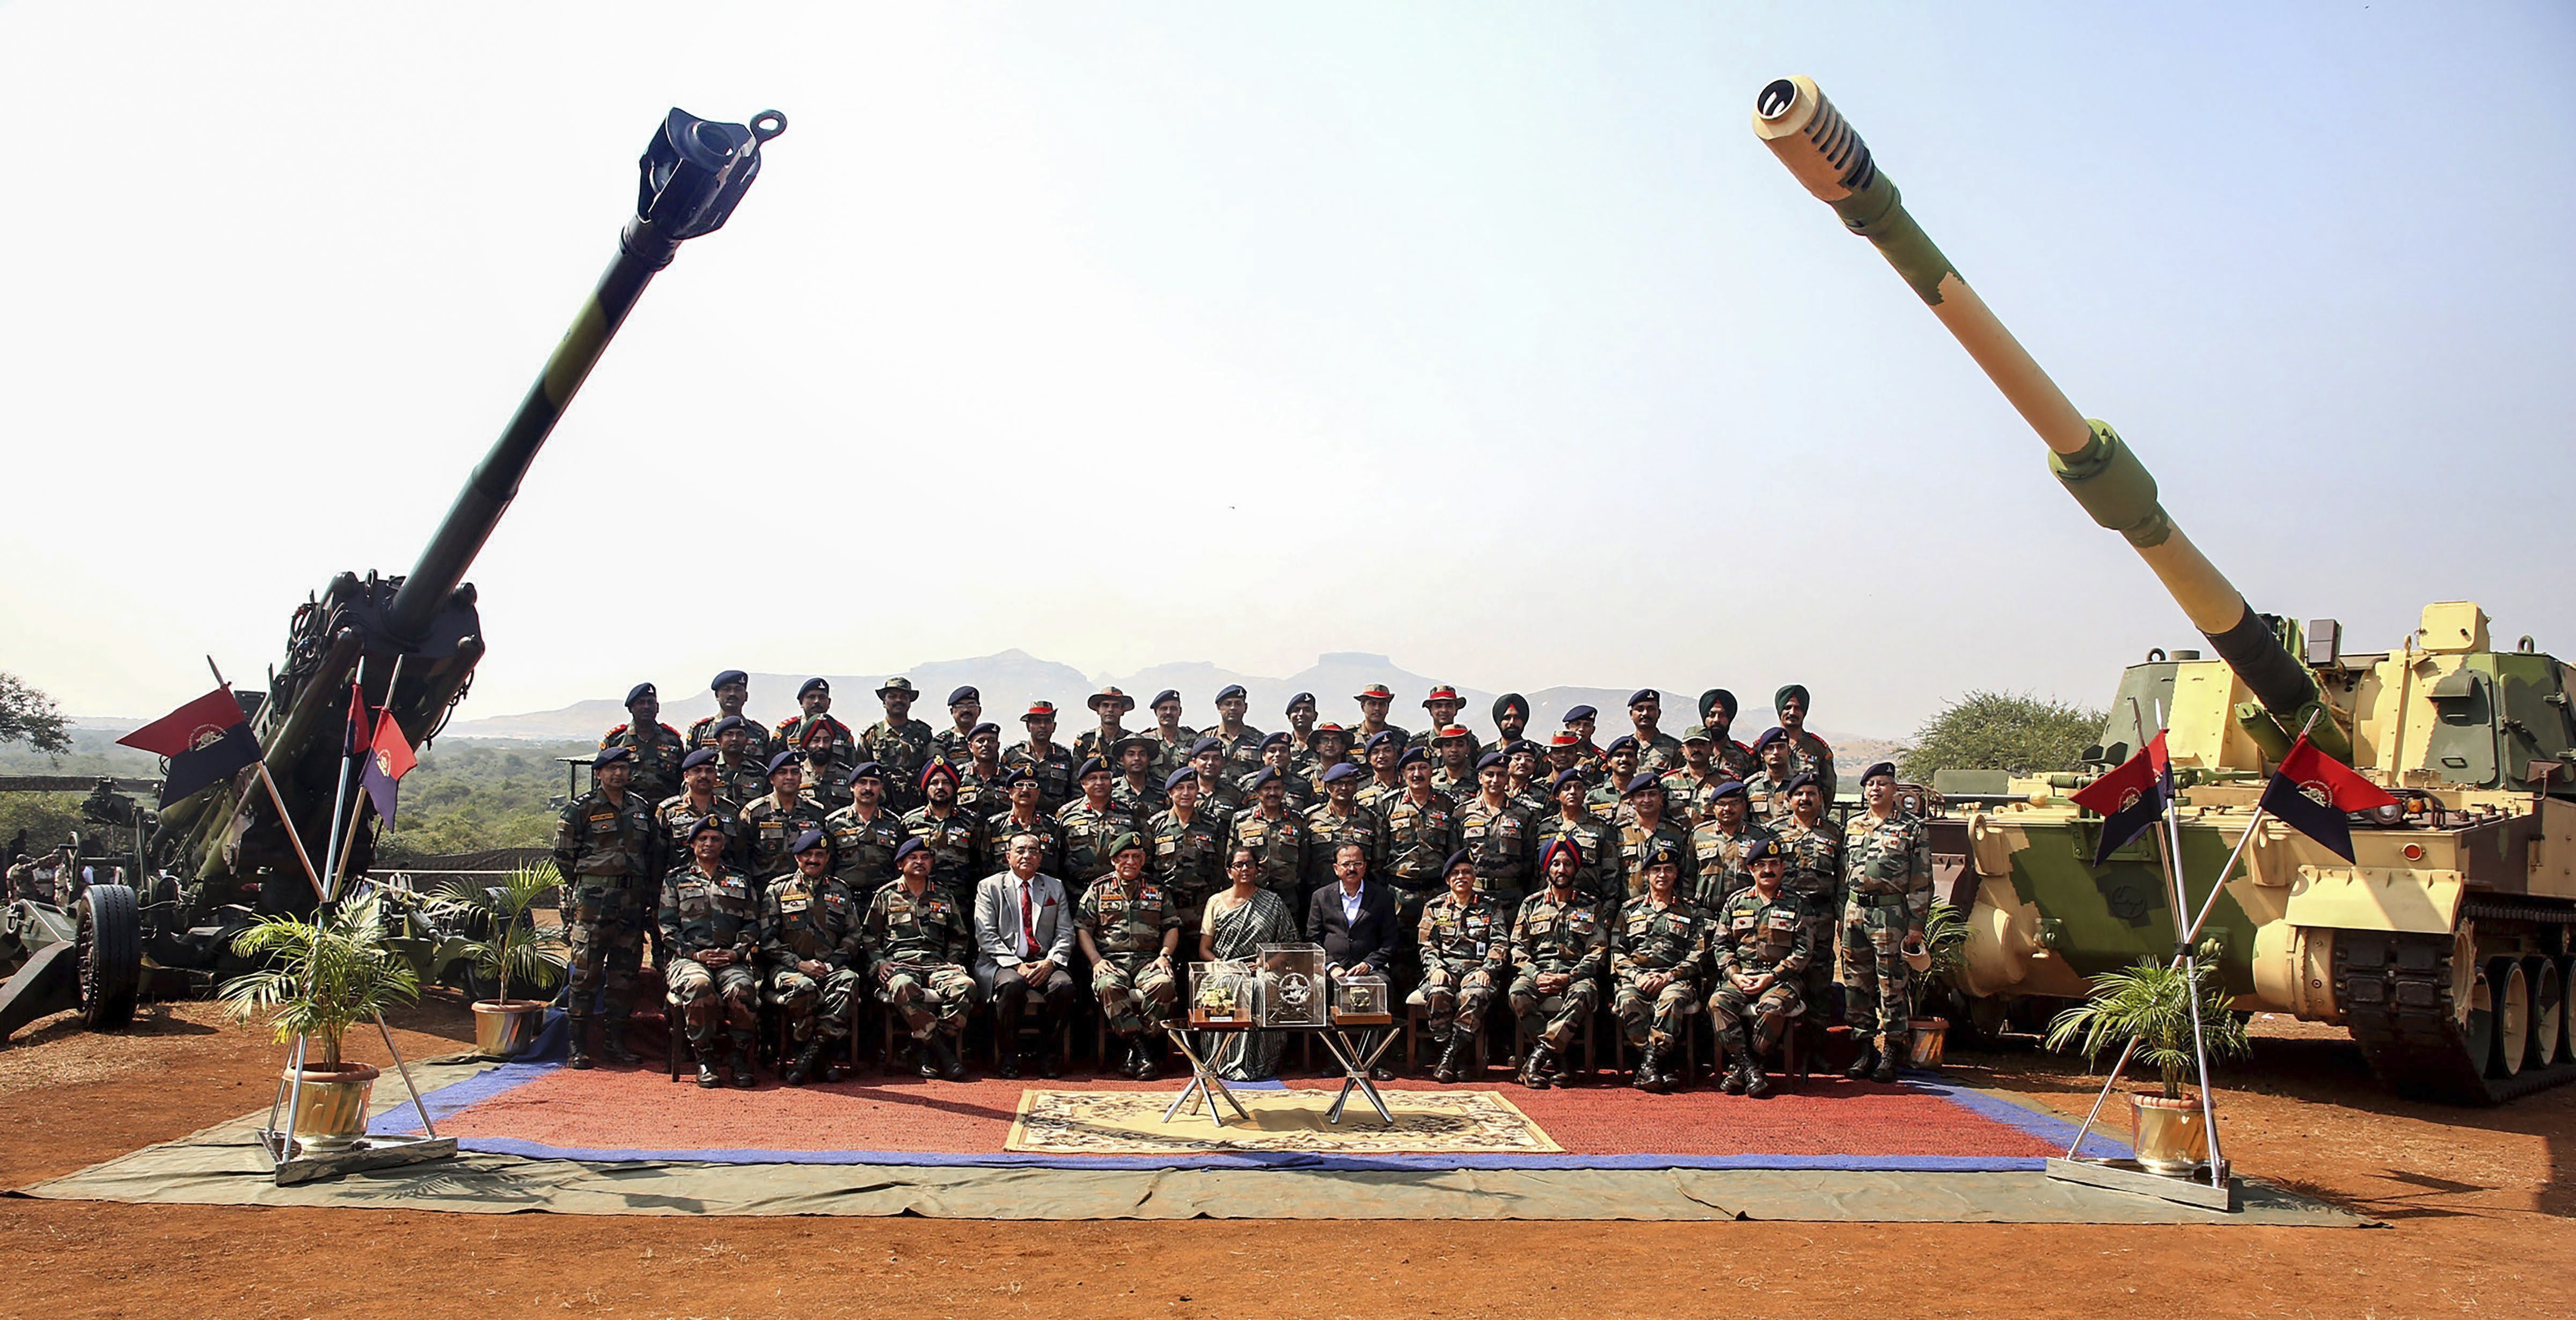 Defence Minister Nirmala Sitharaman, Army Chief General Bipin Rawat and others pose for a group photograph at the formal induction of three major artillery gun systems, including the M777 American Ultra Light Howitzers and the K-9 Vajra, into the Army during a ceremony at Deolali artillery centre, in Nashik district - PTI